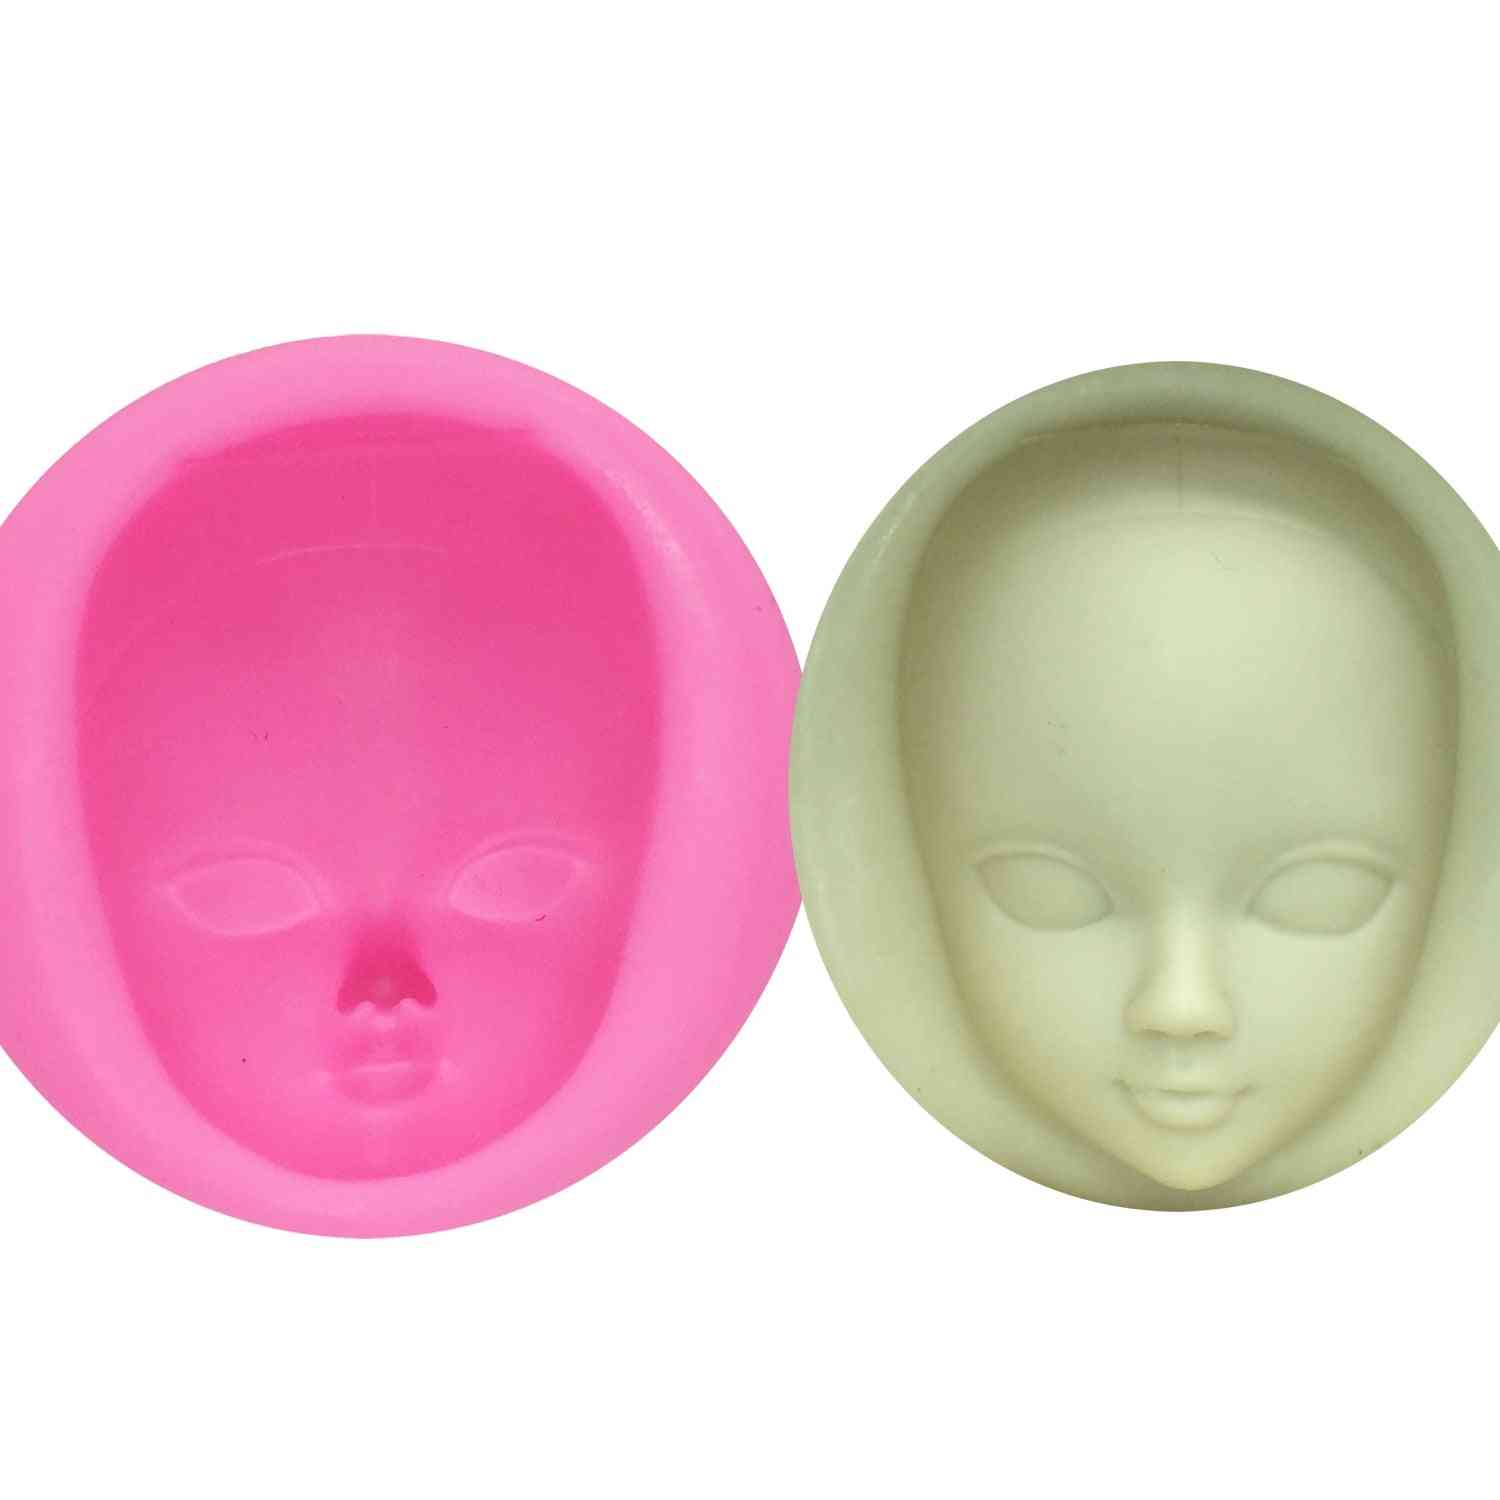 Diy Girl Face Fondant Silicone Mold - Cake Decorating Tools Woman Mask Gumpaste Clay Resin Mould